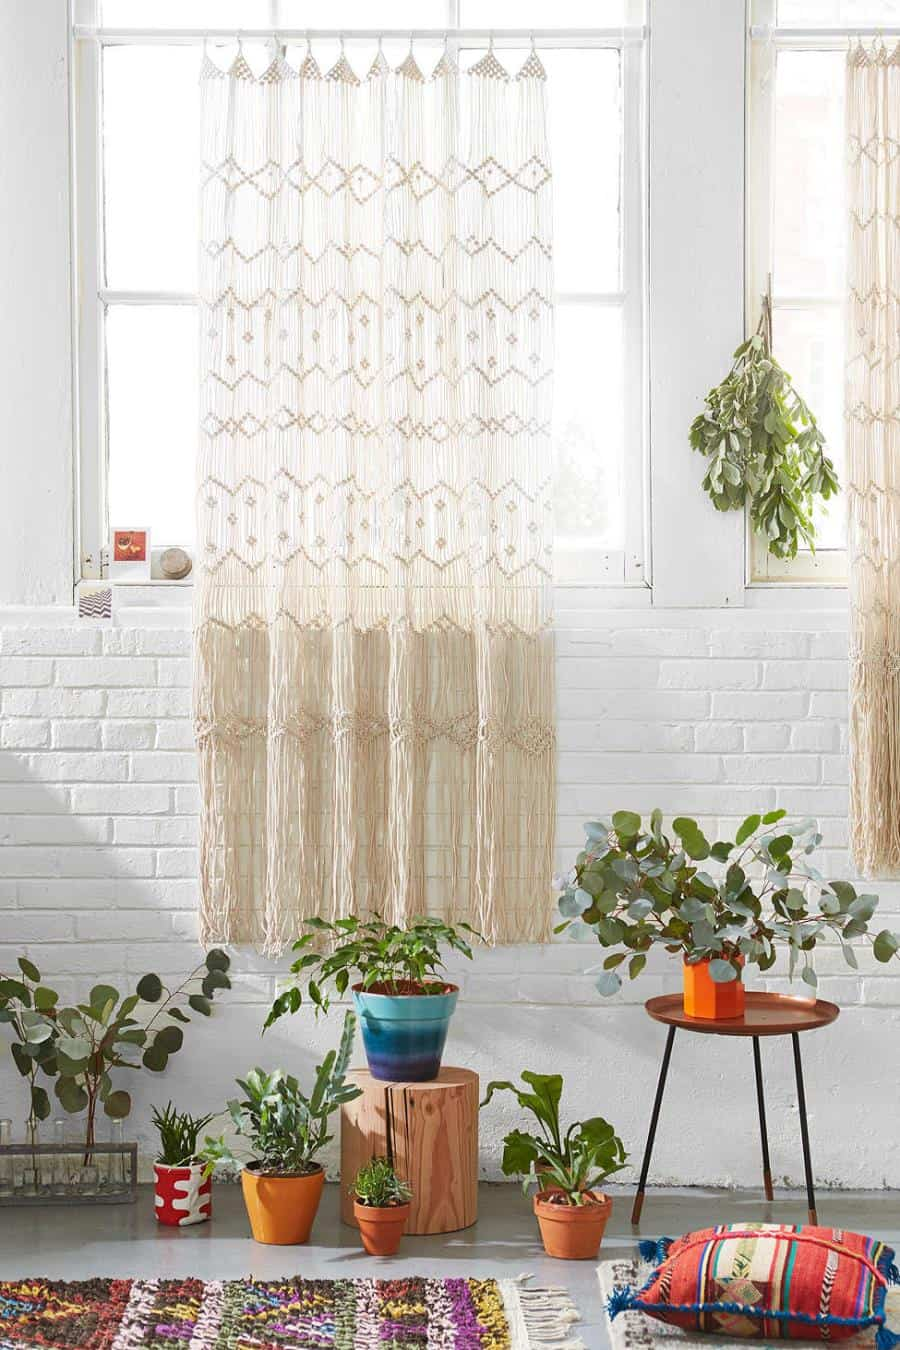 Shabby chic white brick wall surrounded by plants and textiles